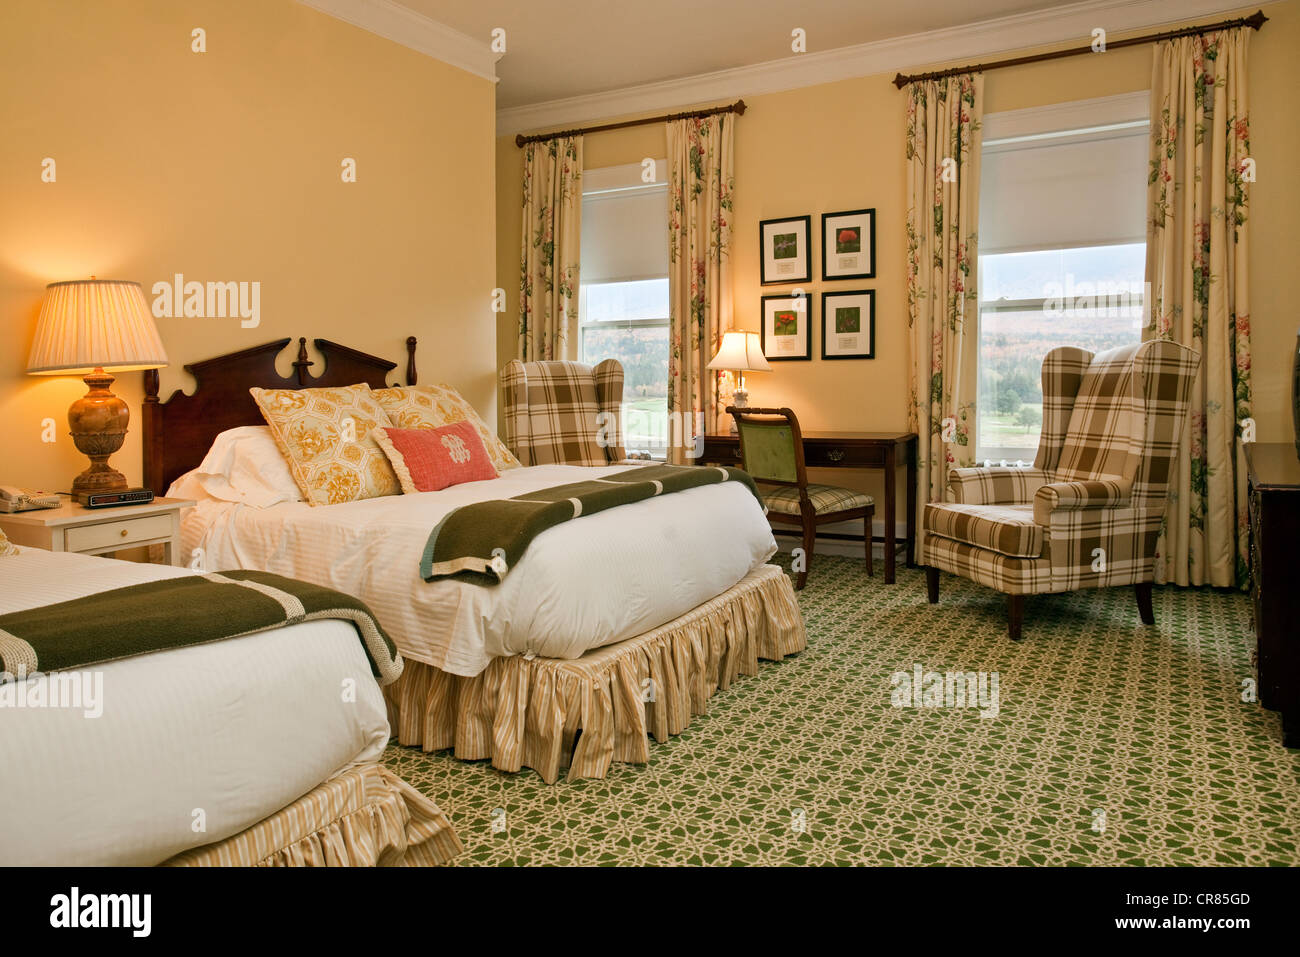 Stock photo united states new england new hampshire bretton woods luxury hotel mount washington resort one of the rooms